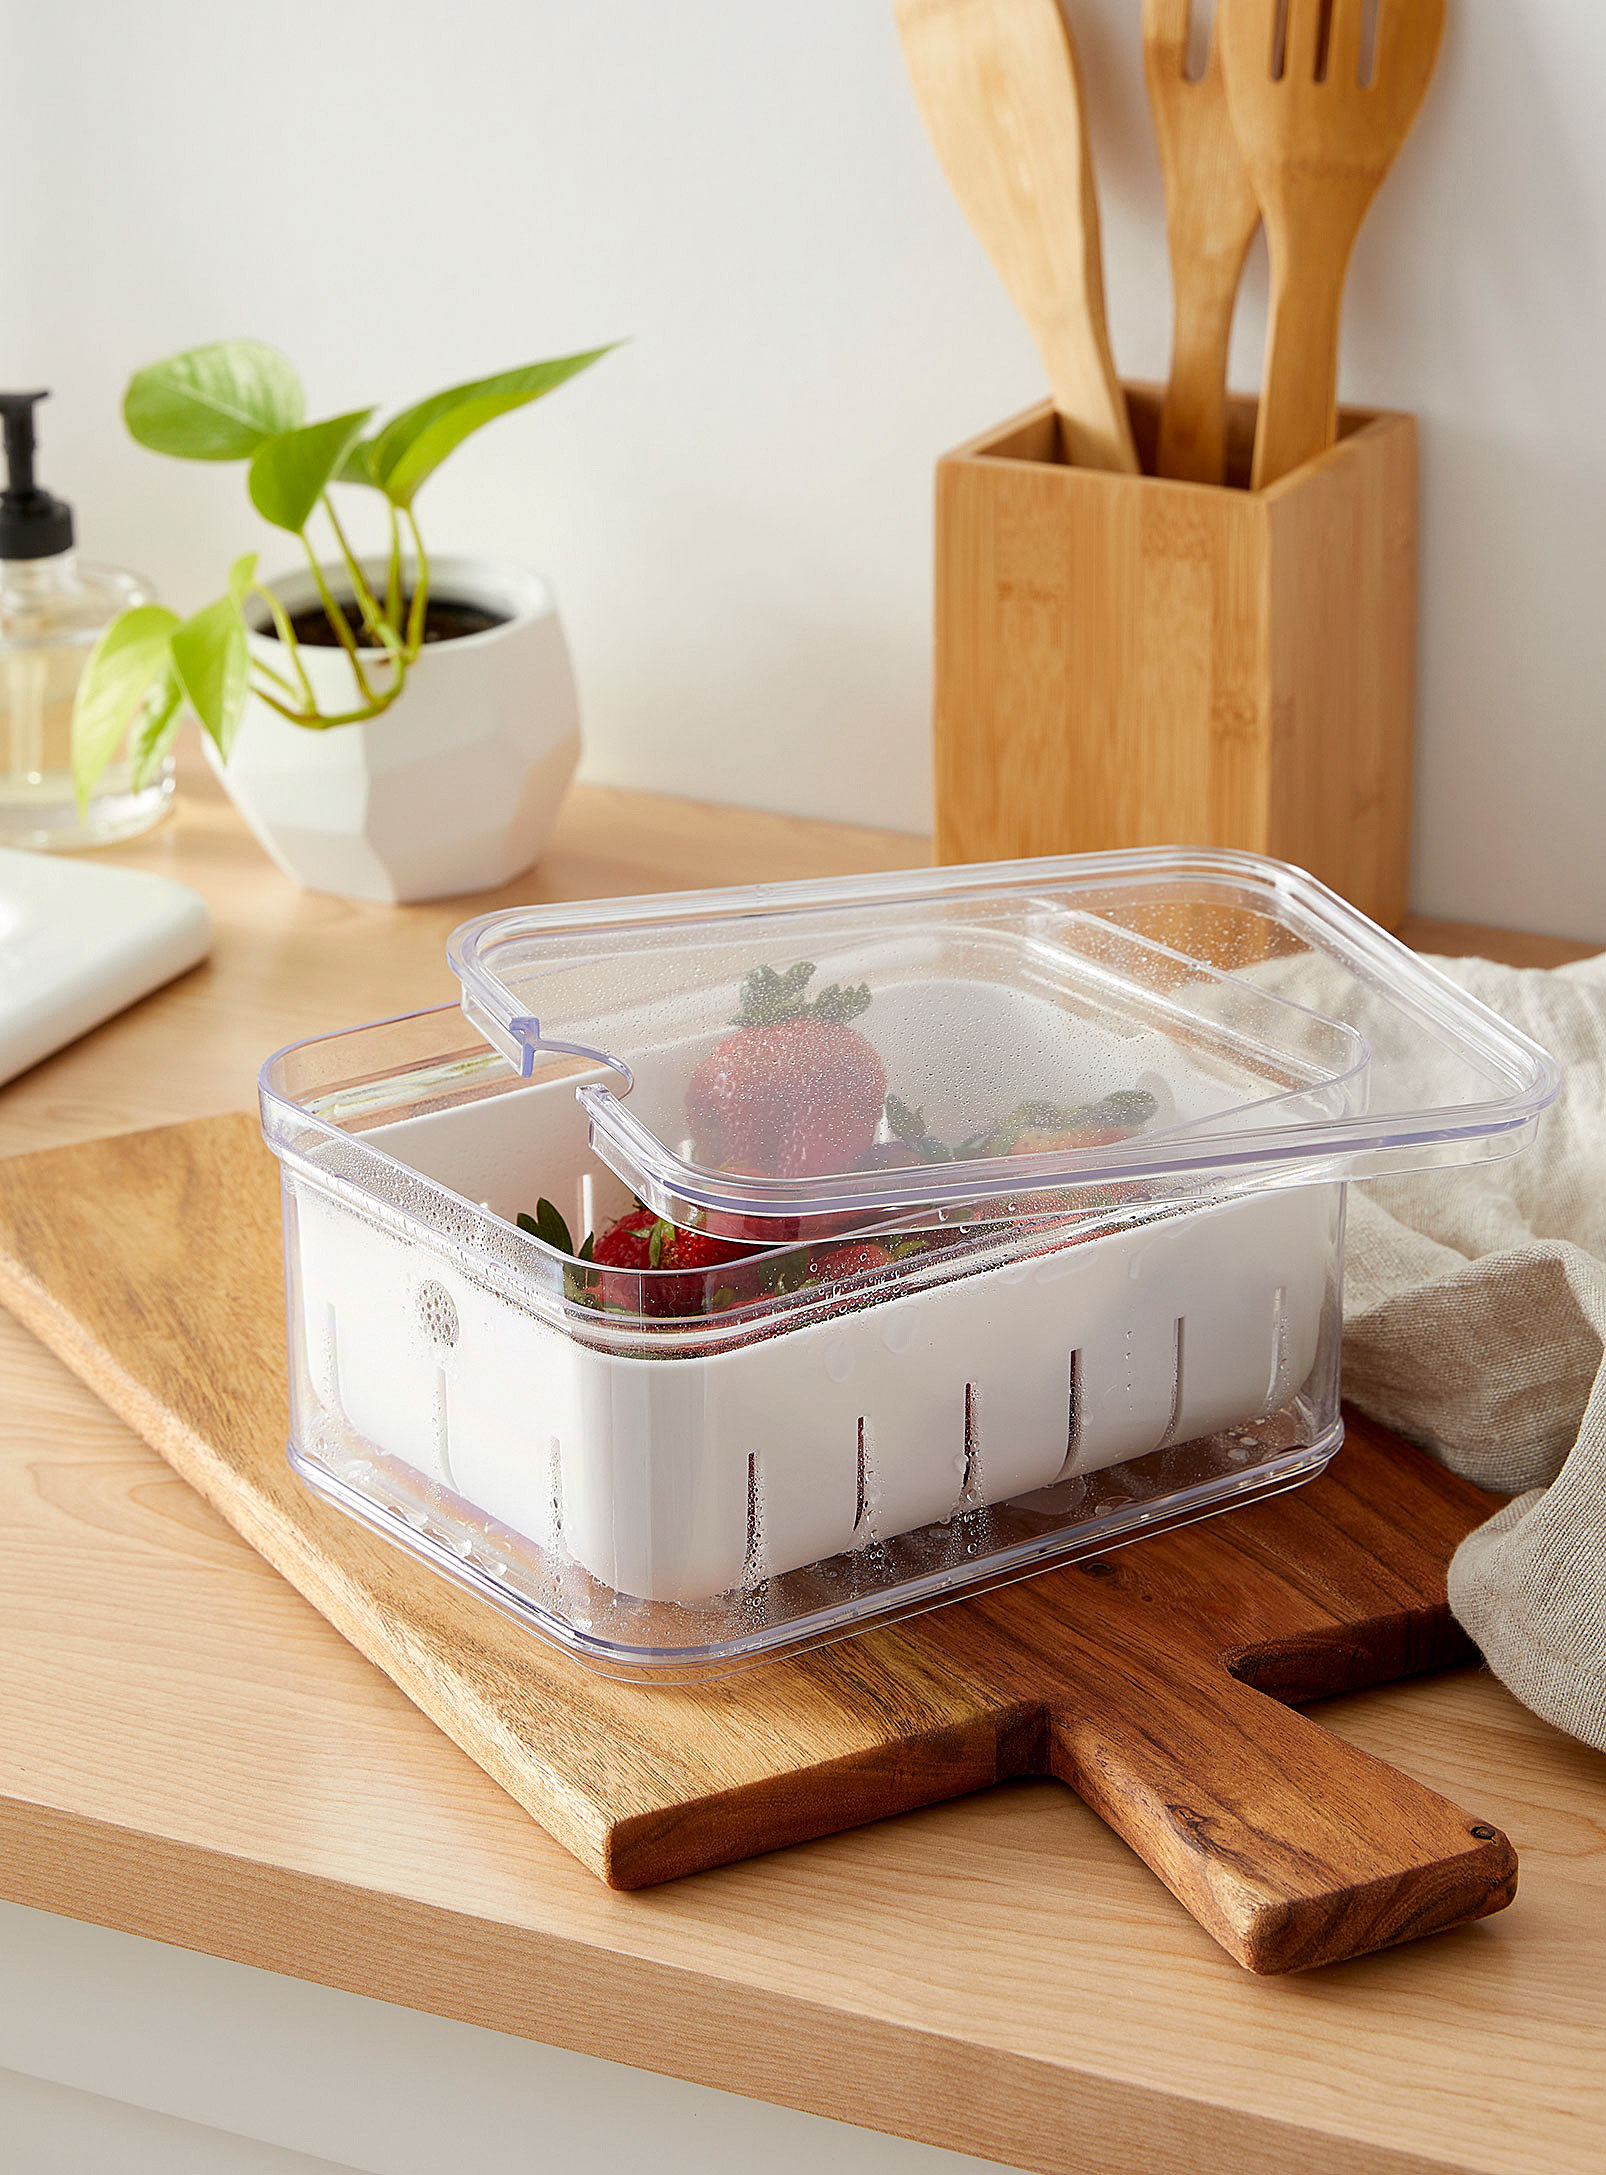 A small container filled with strawberries on a wooden counter